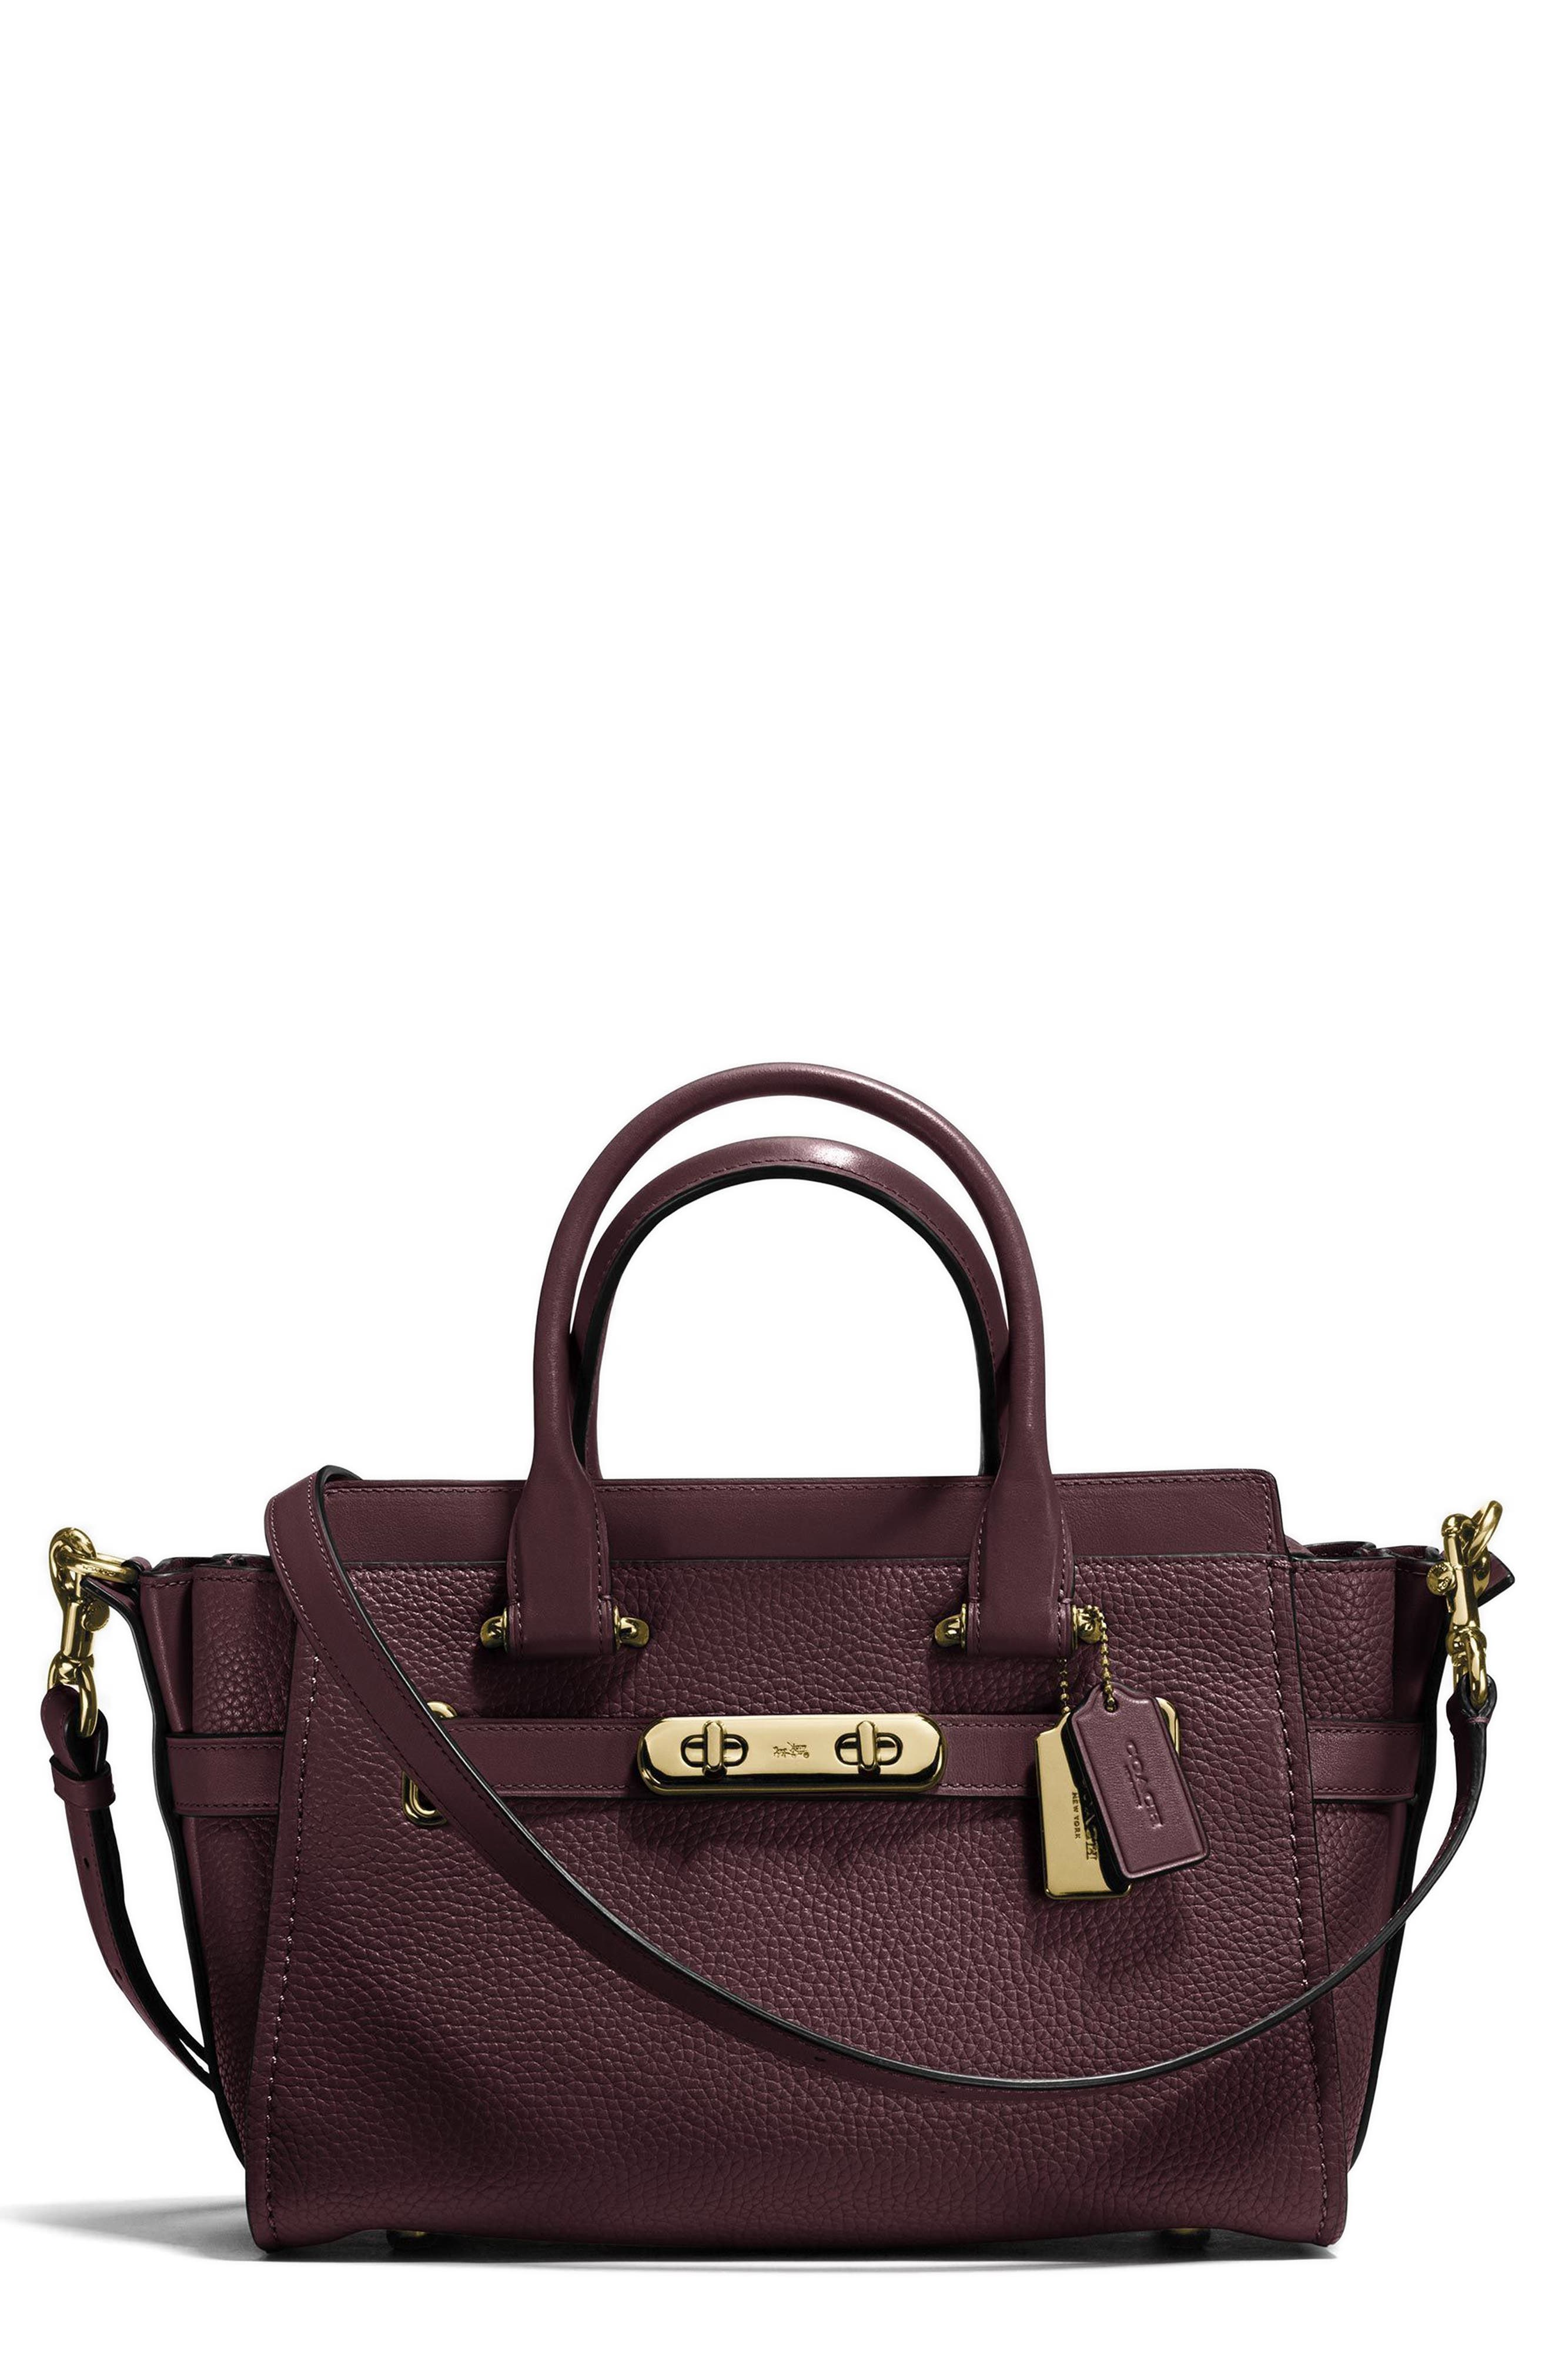 Swagger 27 Calfskin Leather Satchel,                         Main,                         color, Oxblood